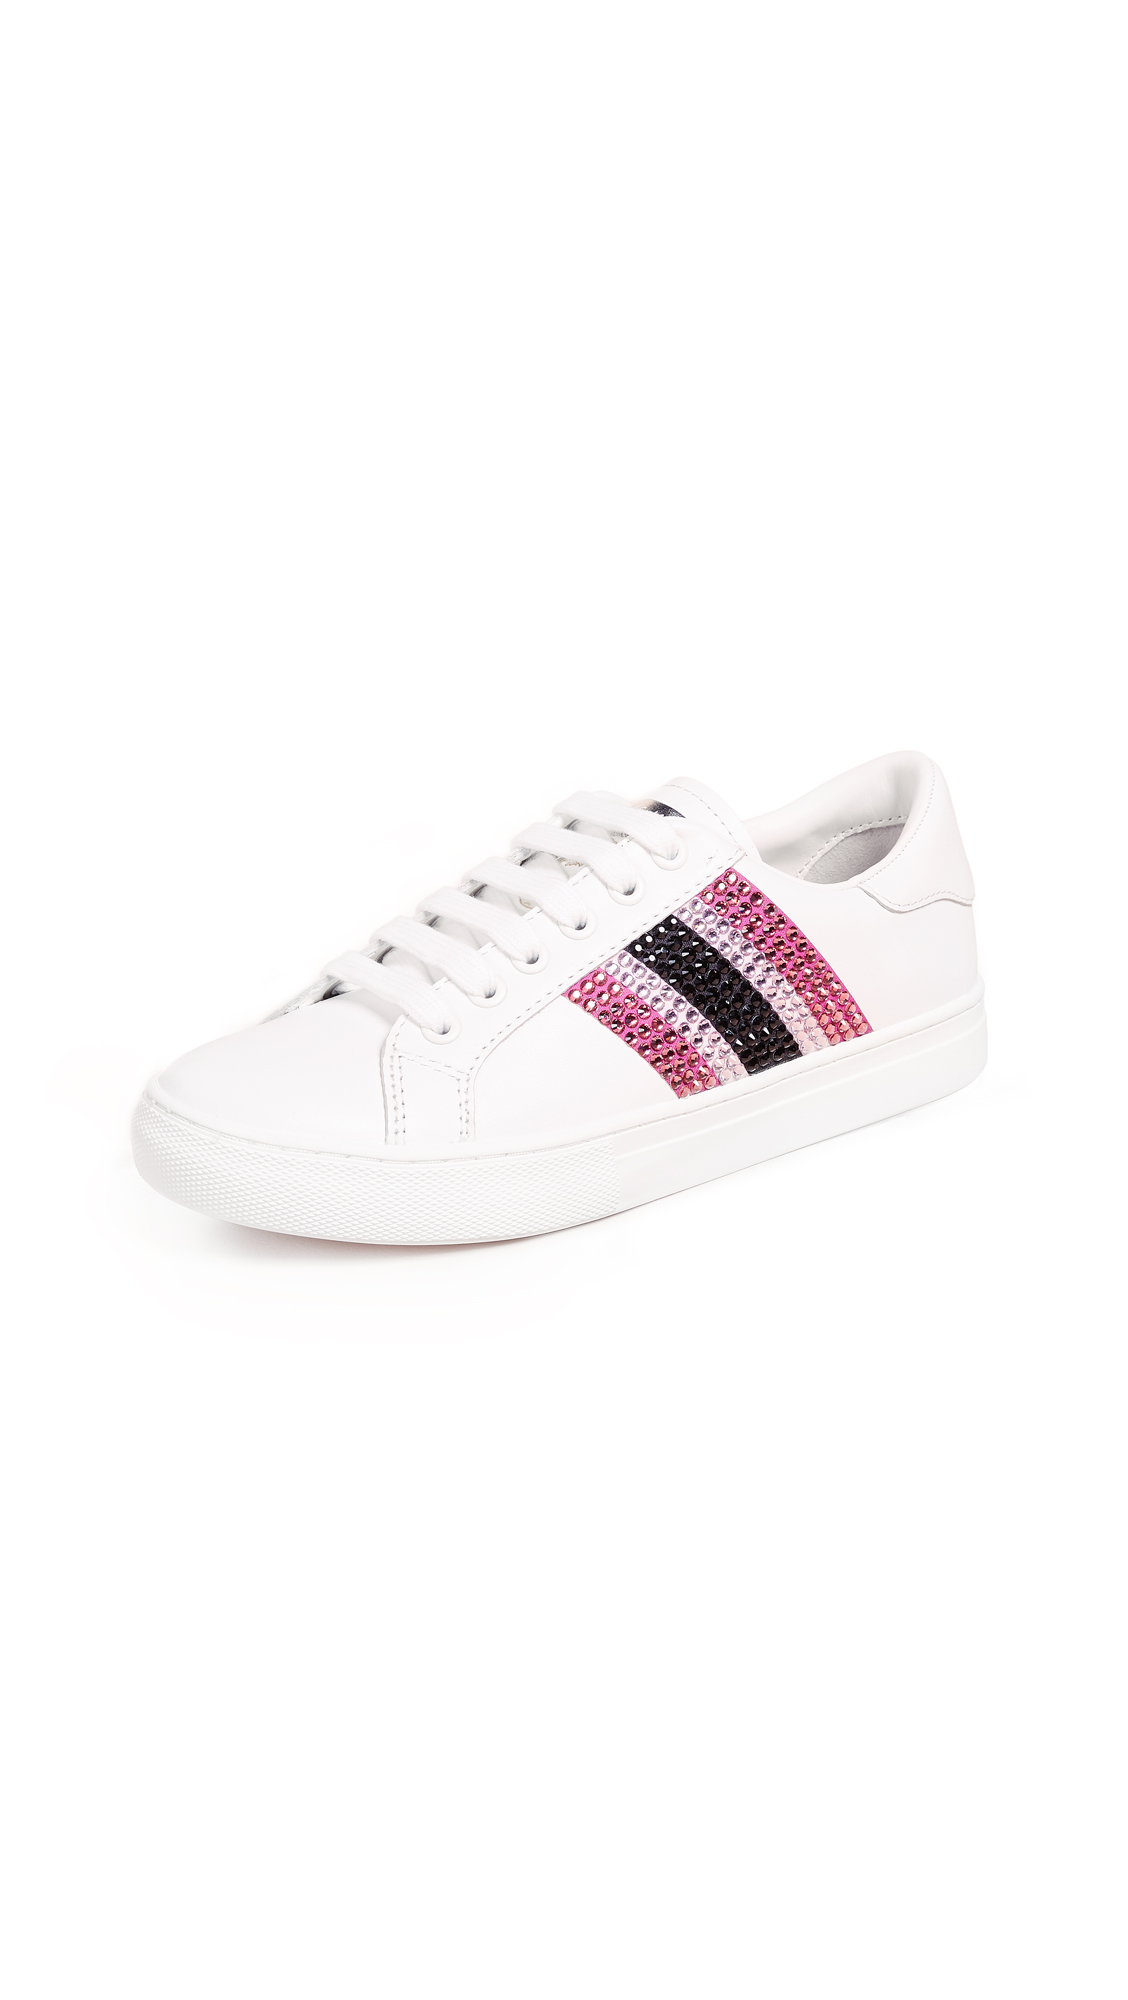 Marc Jacobs Empire Strass Sneakers